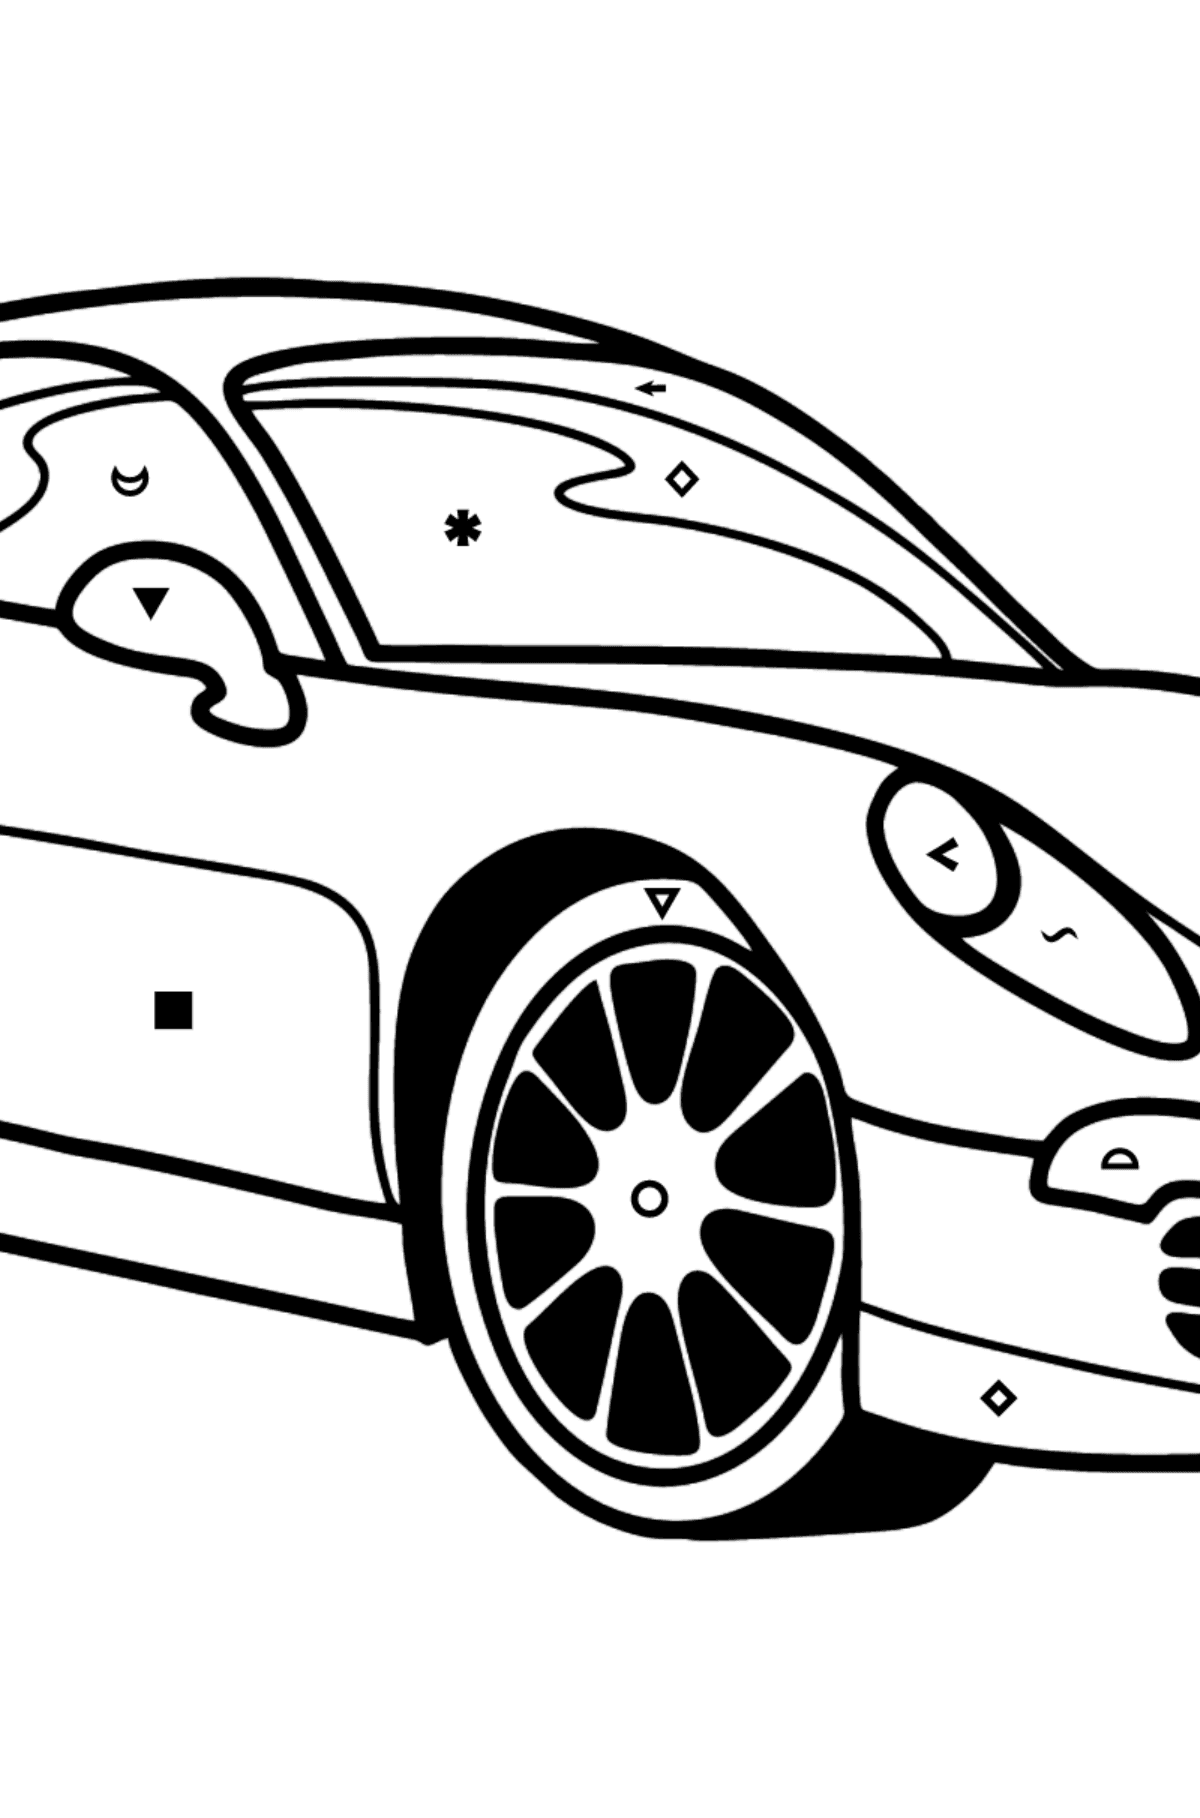 Porsche Cayman Sports Car coloring page - Coloring by Symbols and Geometric Shapes for Kids